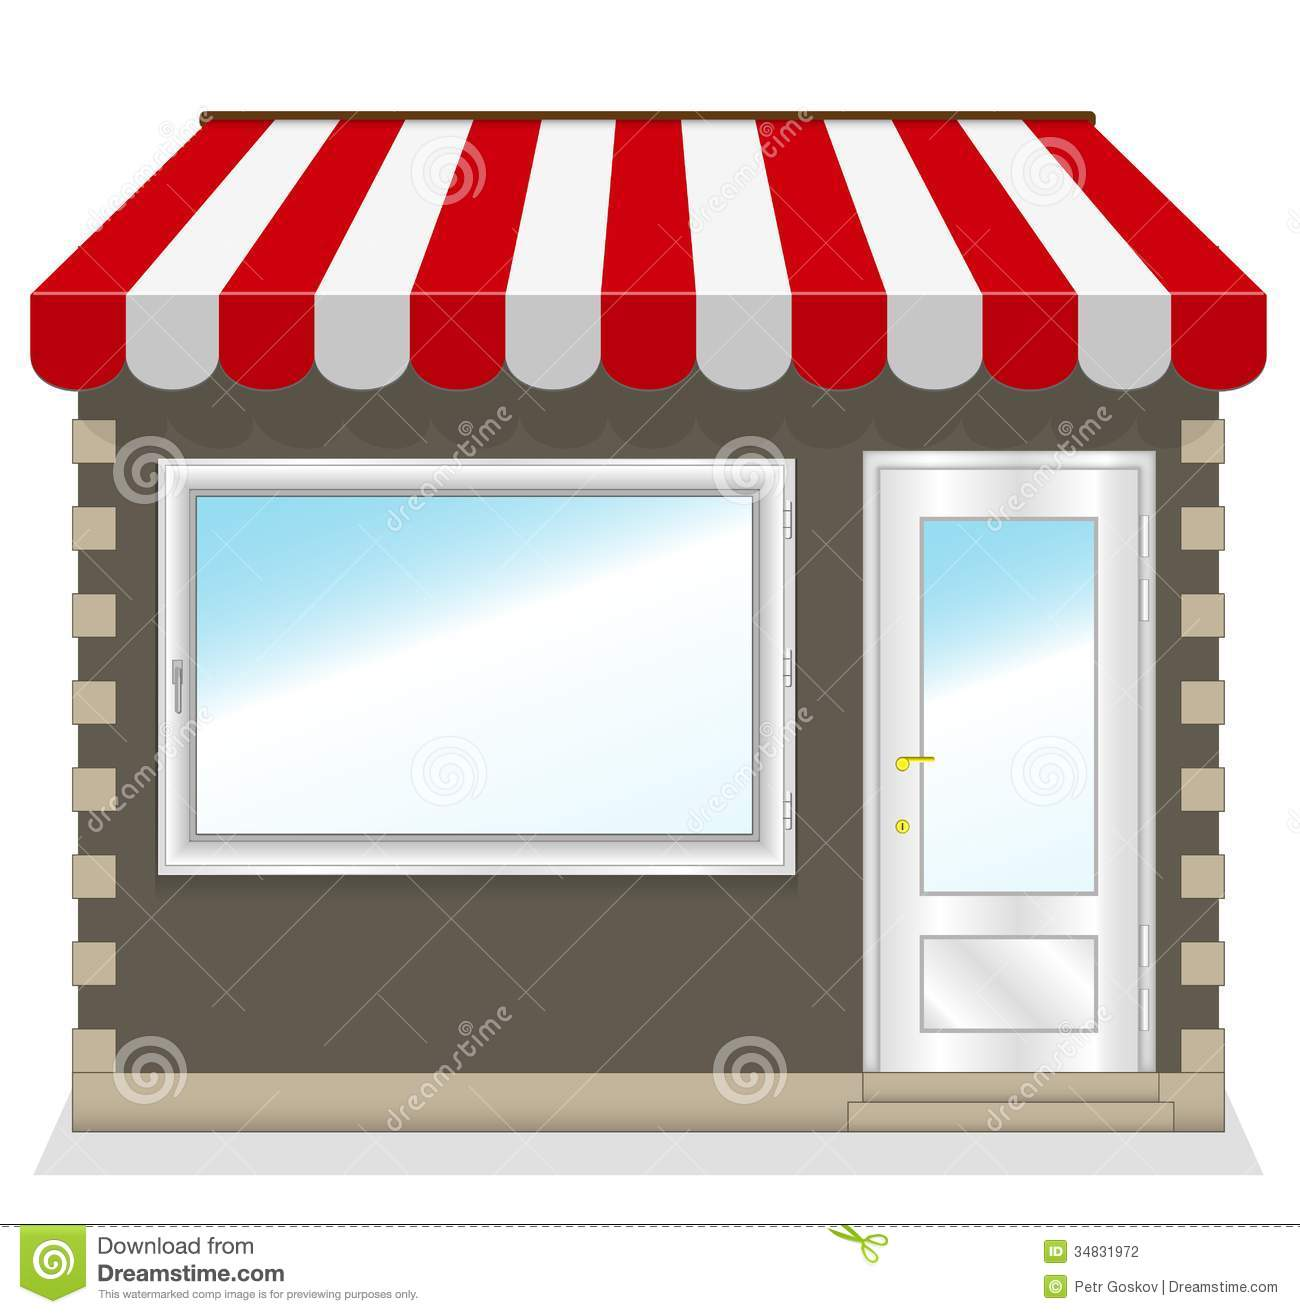 Cute shop icon with red awnings stock photography image for Toldos publicitarios